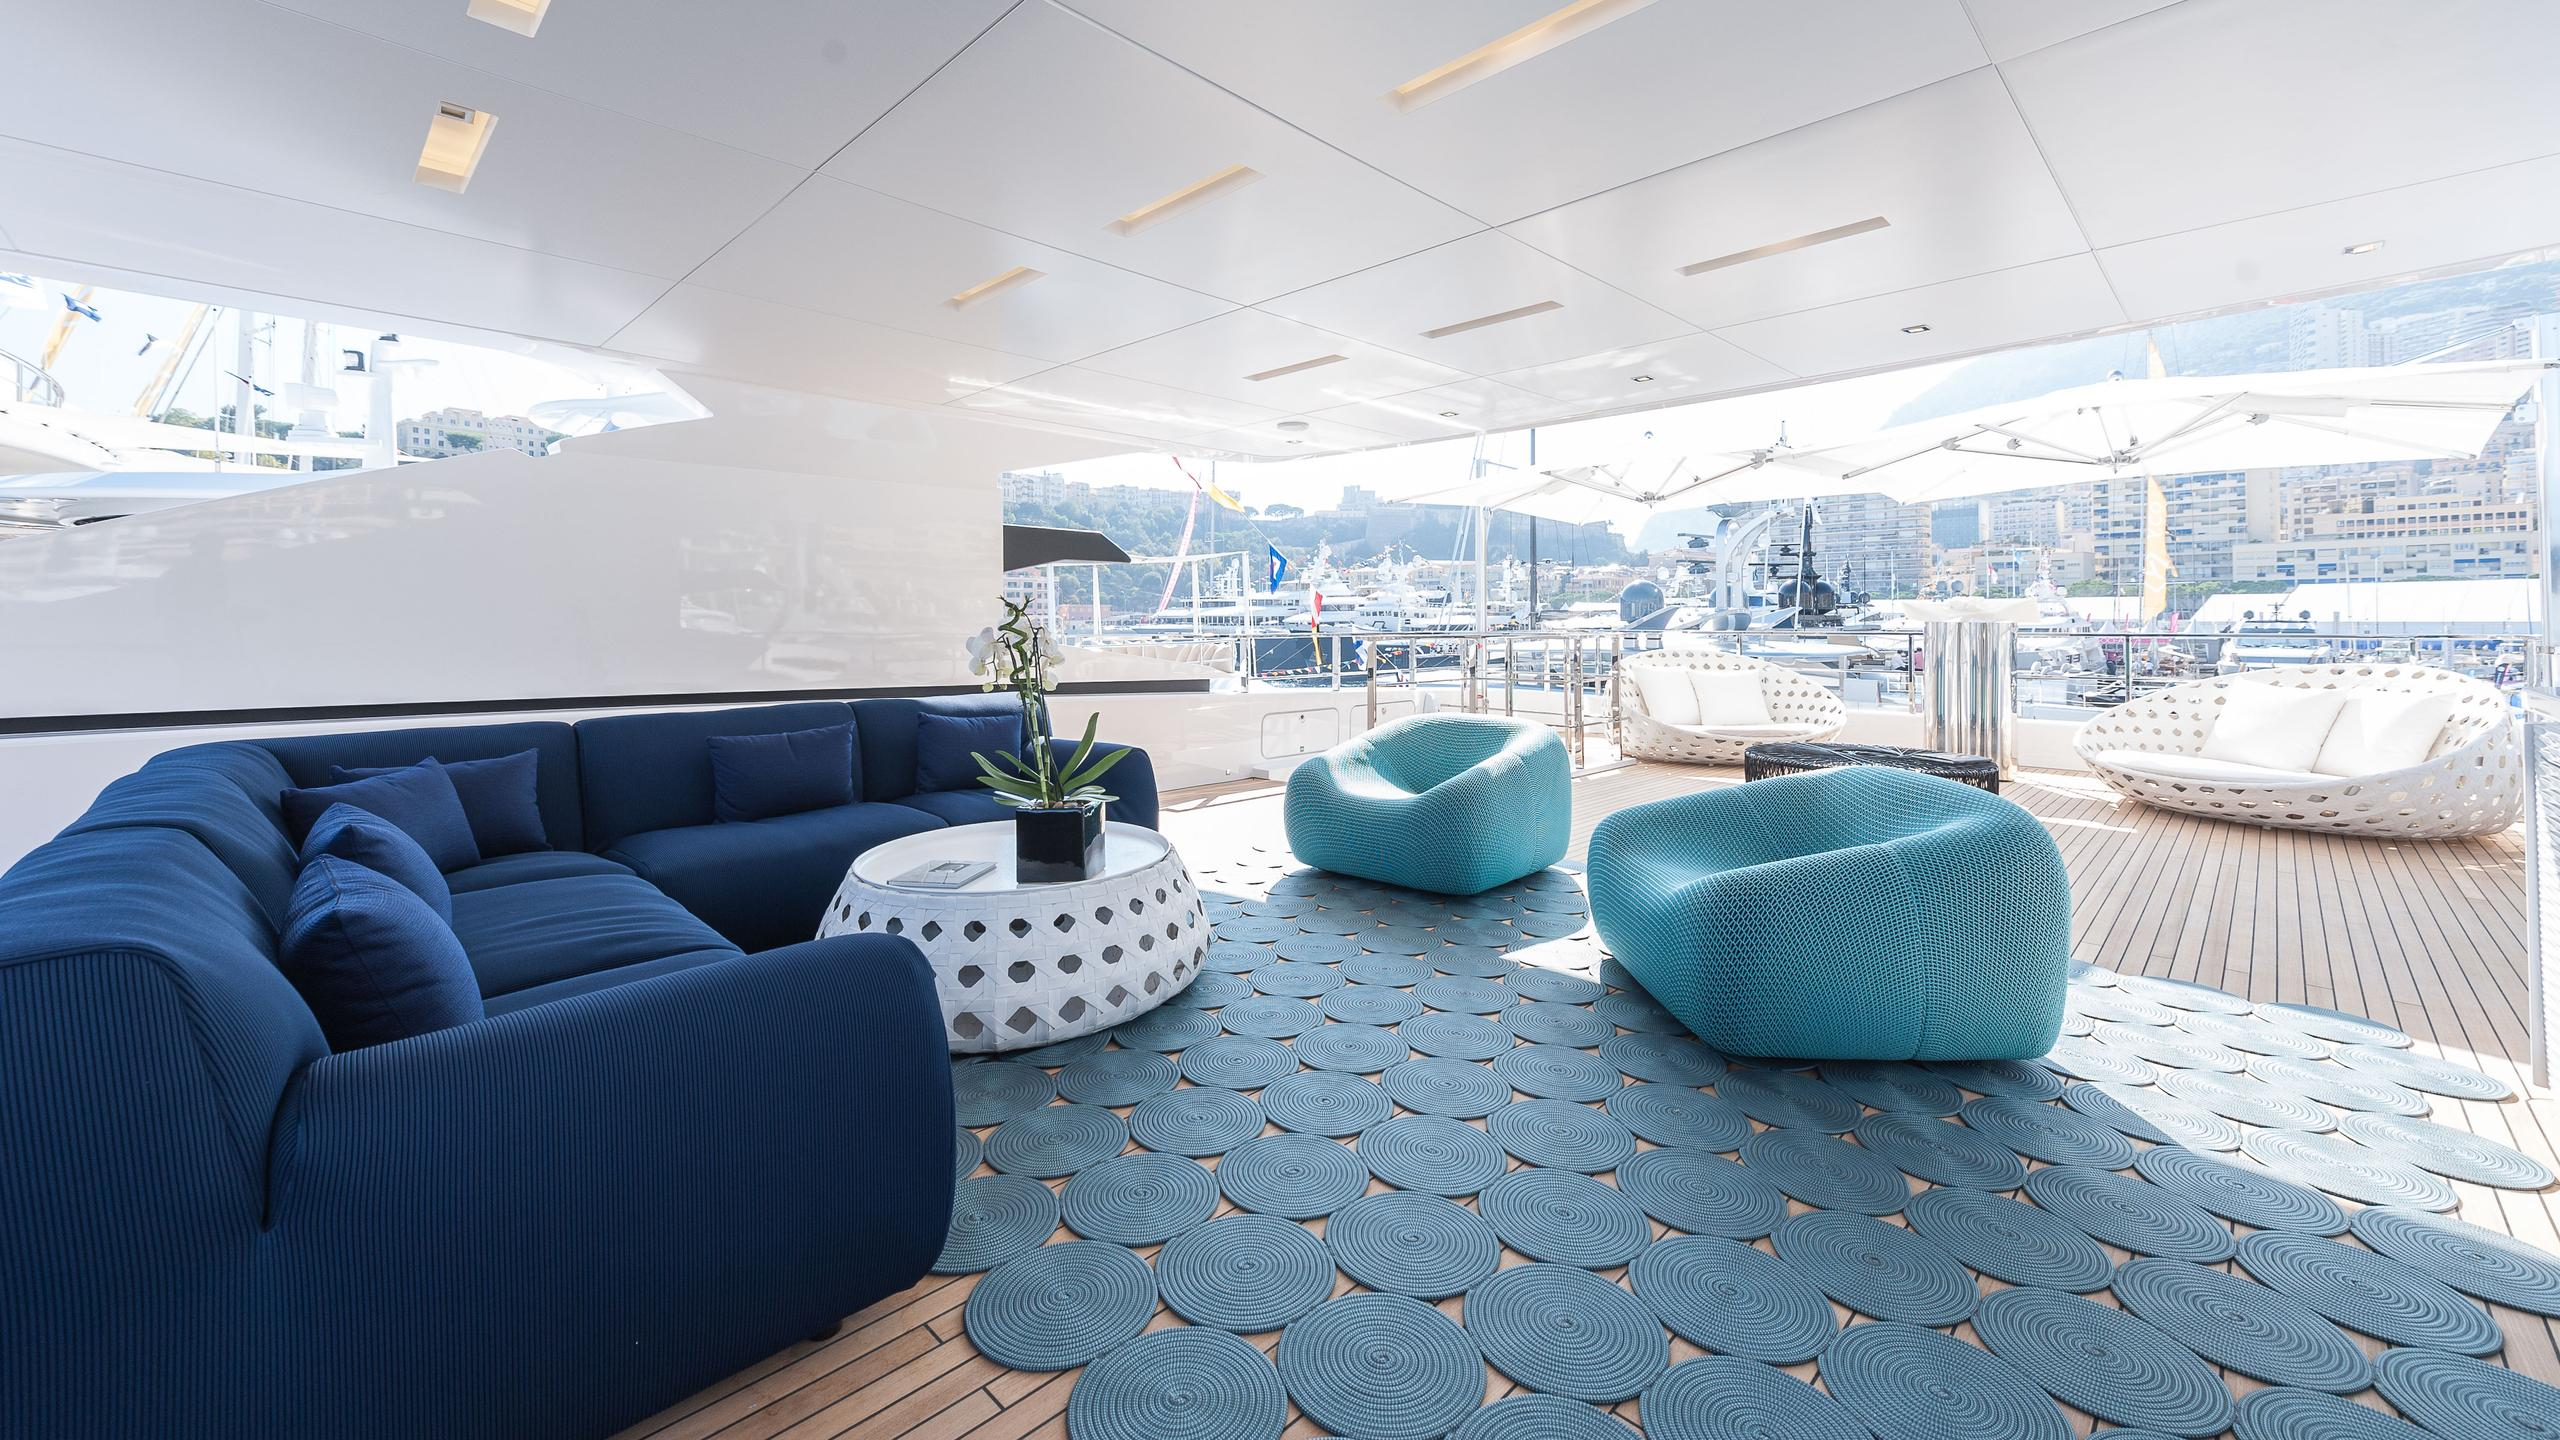 entourage-motor-yacht-admiral-the-italian-sea-group-2014-47m-covered-deck